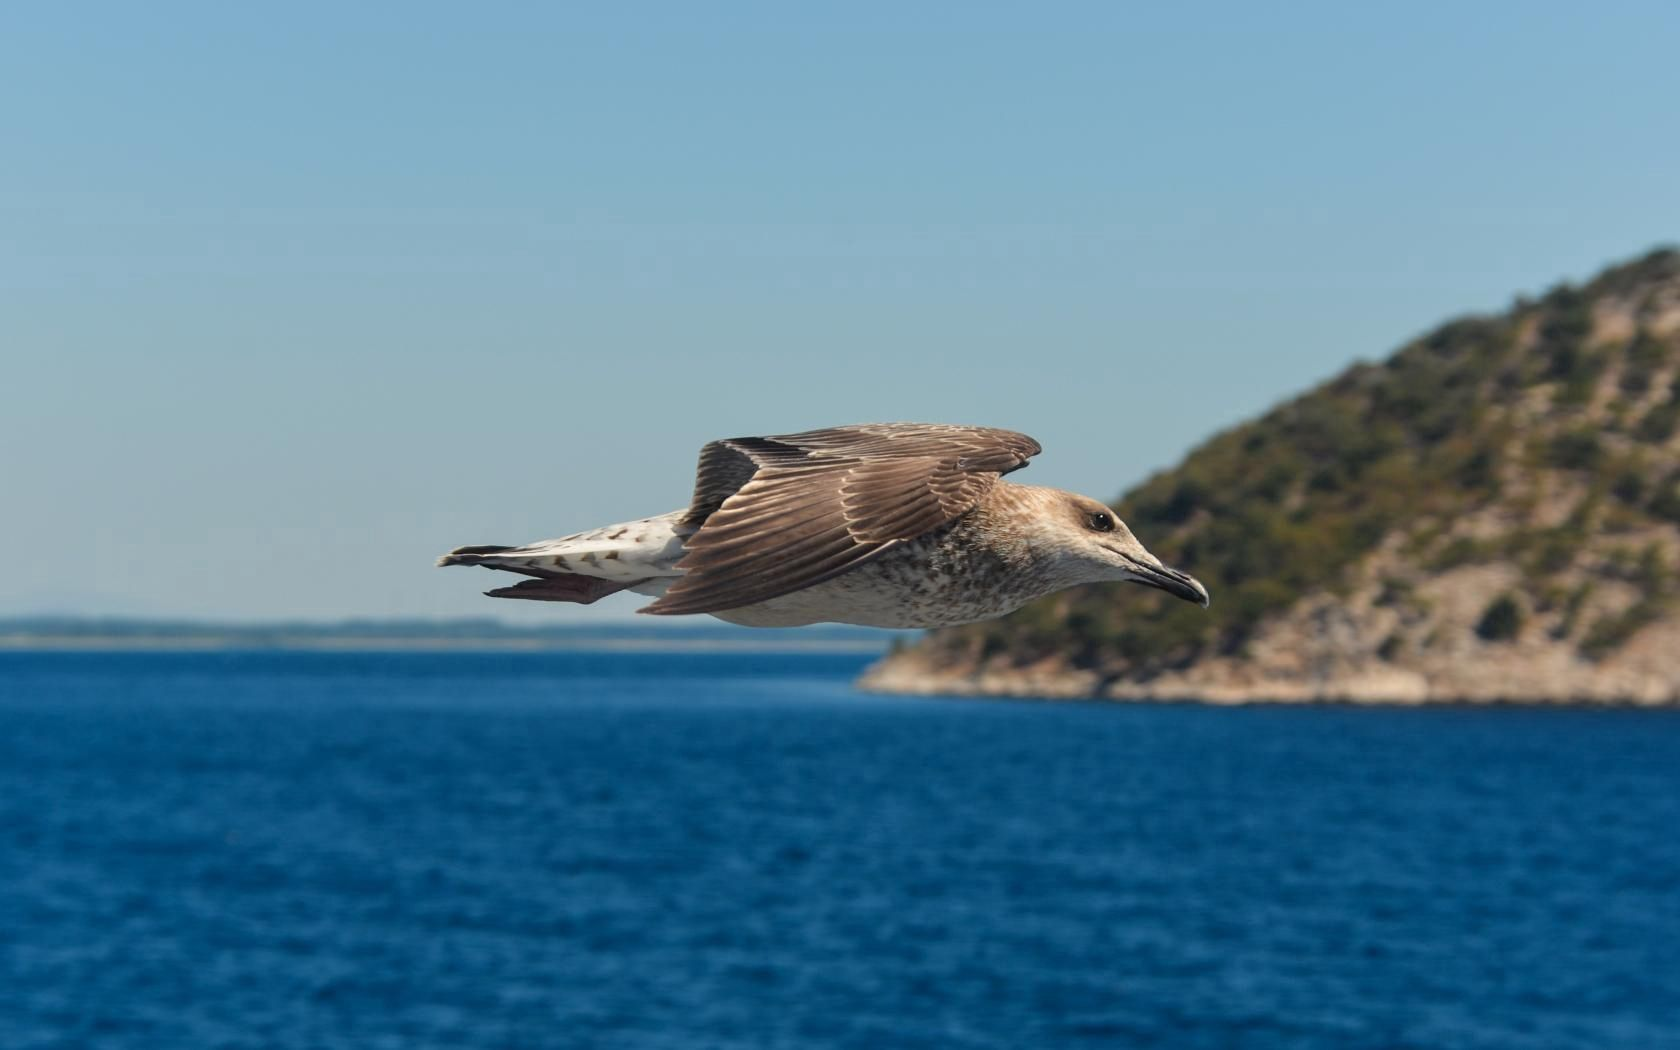 89608 download wallpaper Animals, Gull, Seagull, Bird, Flight, Sea screensavers and pictures for free